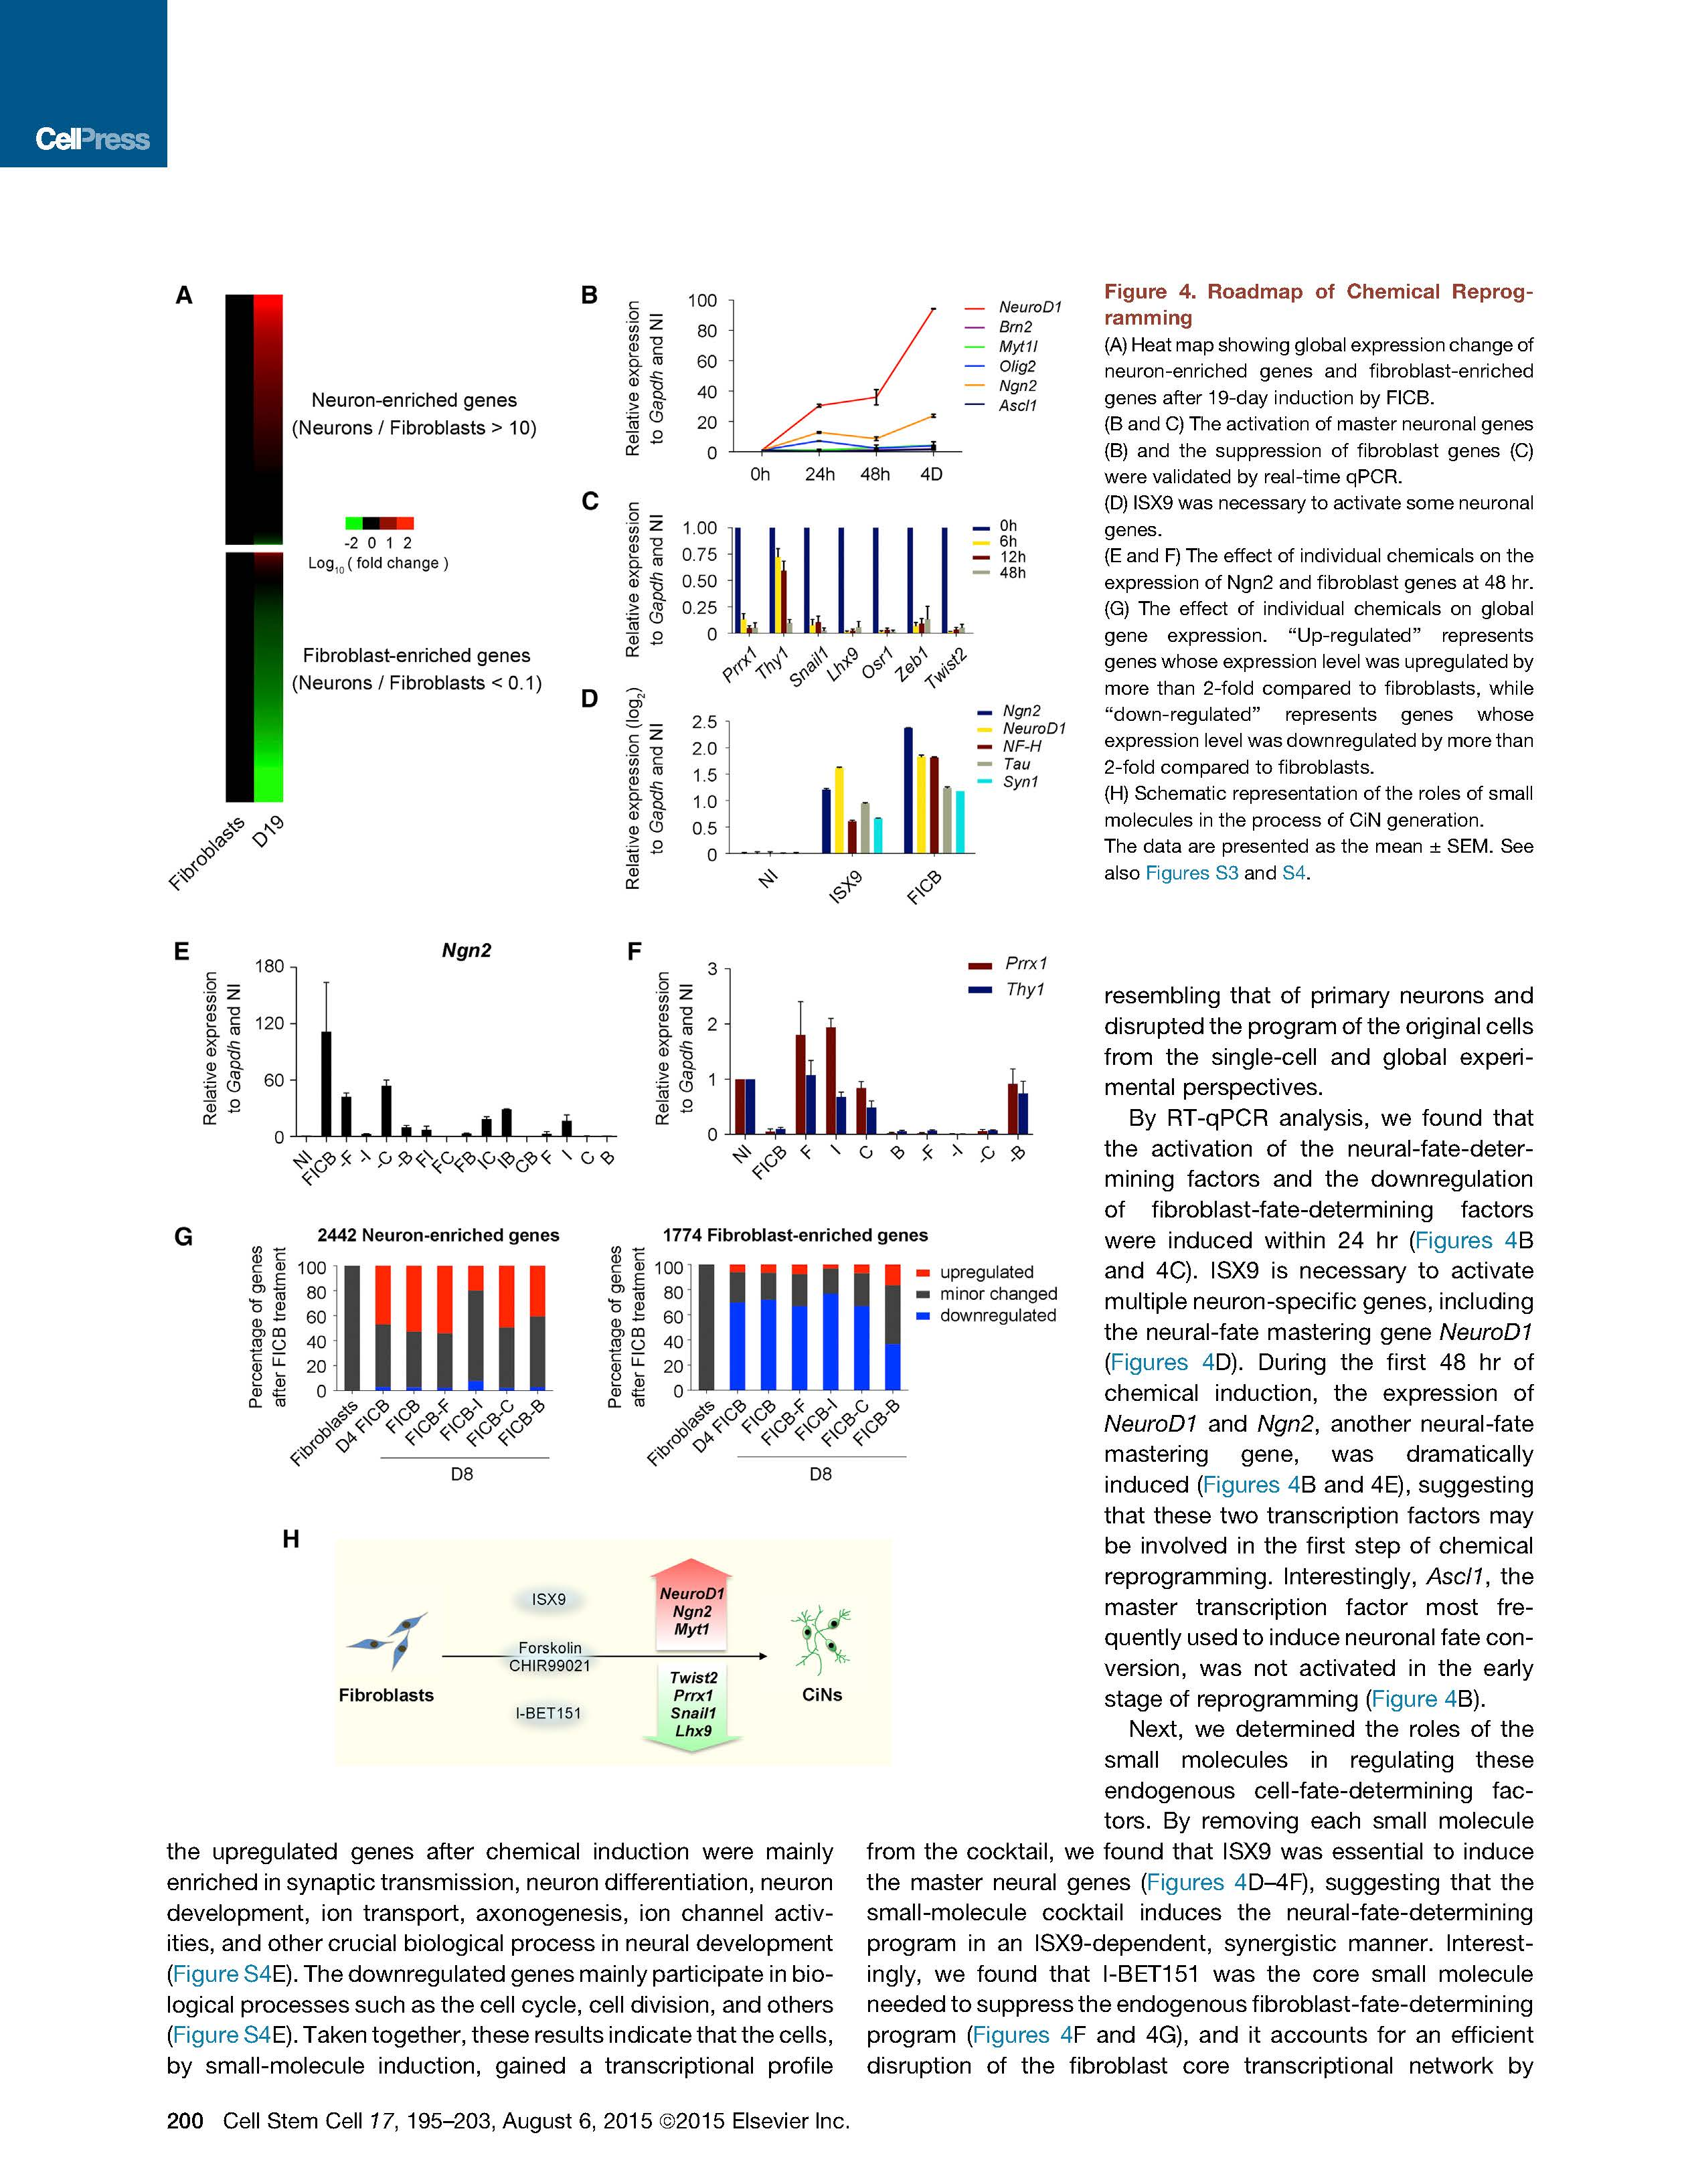 Small-Molecule-Driven-Direct-Reprogramming-of-Mouse-Fibroblasts-into-Functional-Neurons-7.jpg